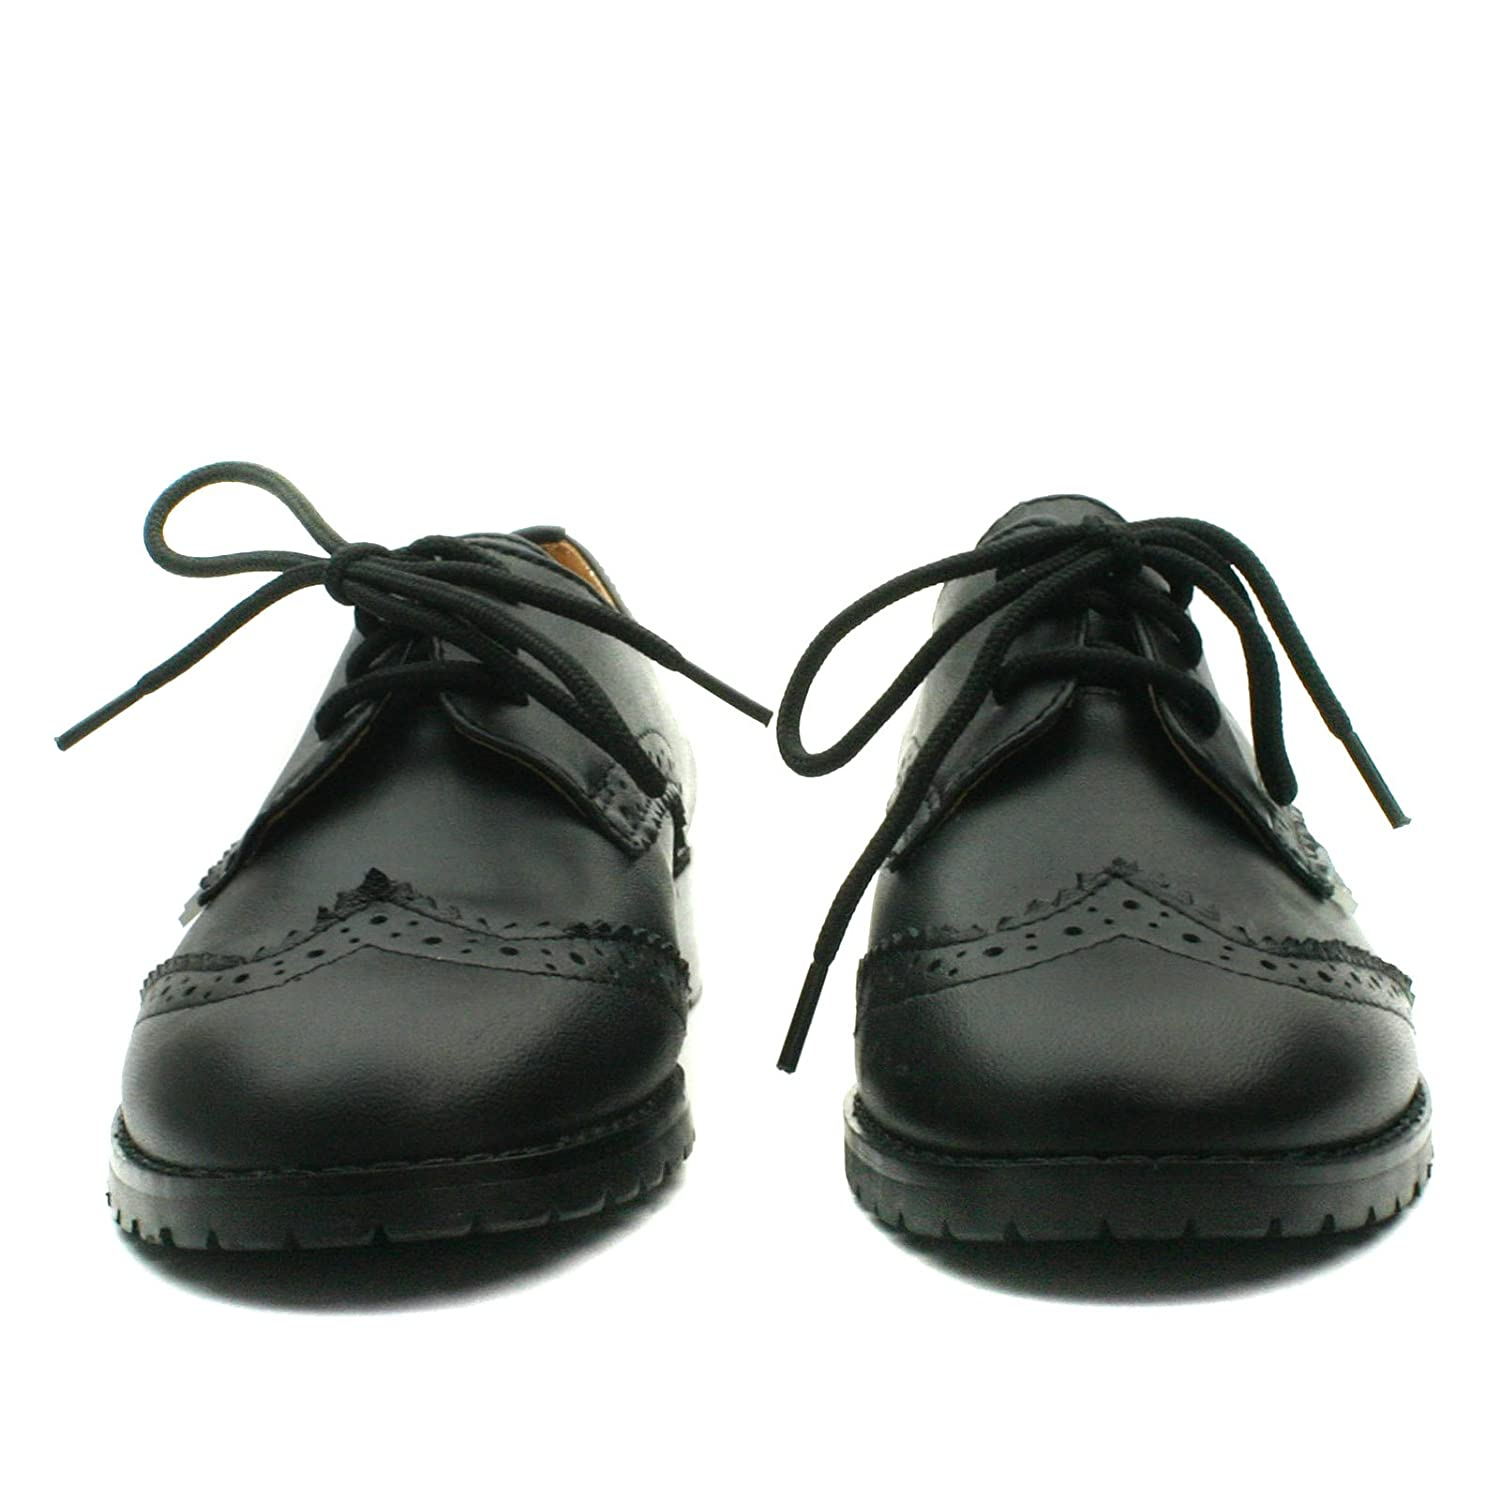 STINGFORD Step2wo School Shoe Laceup for Girls in Black Lea Leather Tamaño 30 qq6qqk